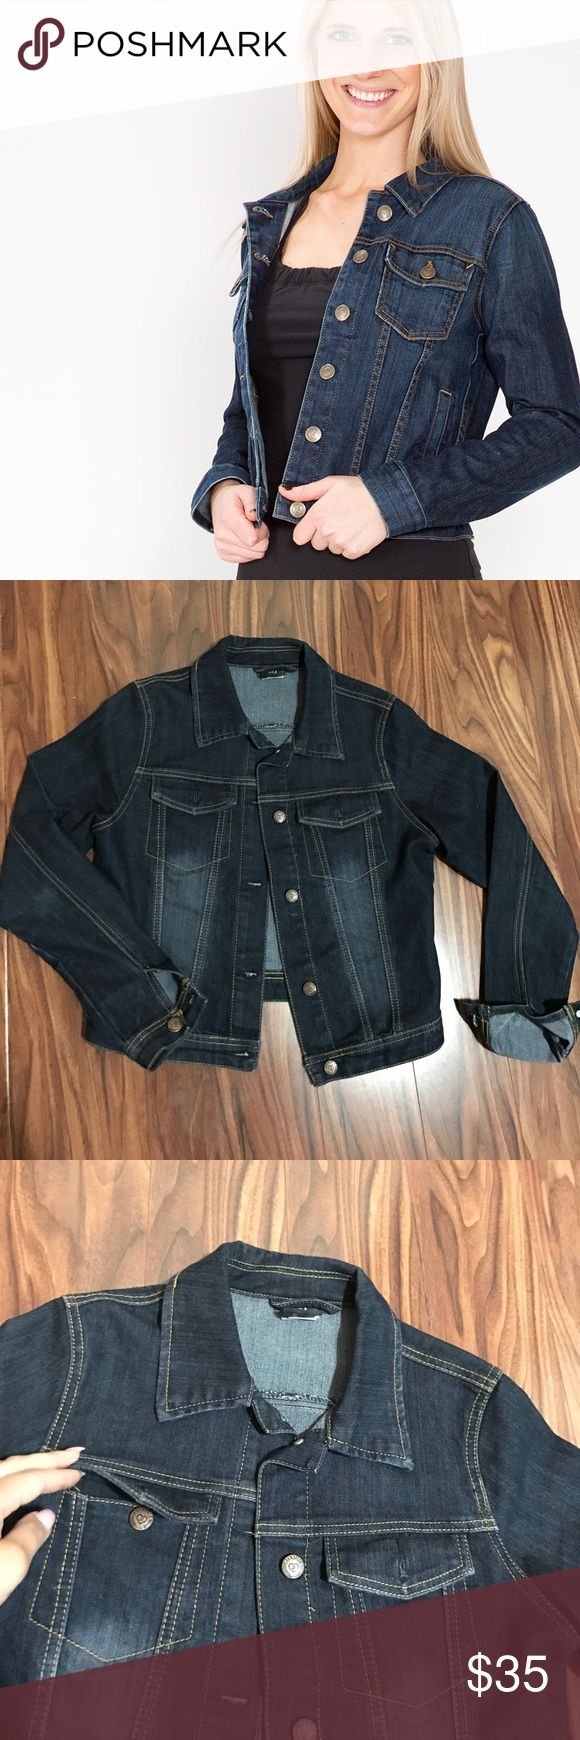 🔥WEEKEND SALE🔥dark denim jacket Luxurie brand size M amazing condition. Super comfortable and cute. Bundle with 2 more items in my closet for 30% off Urban Outfitters Jackets & Coats Jean Jackets